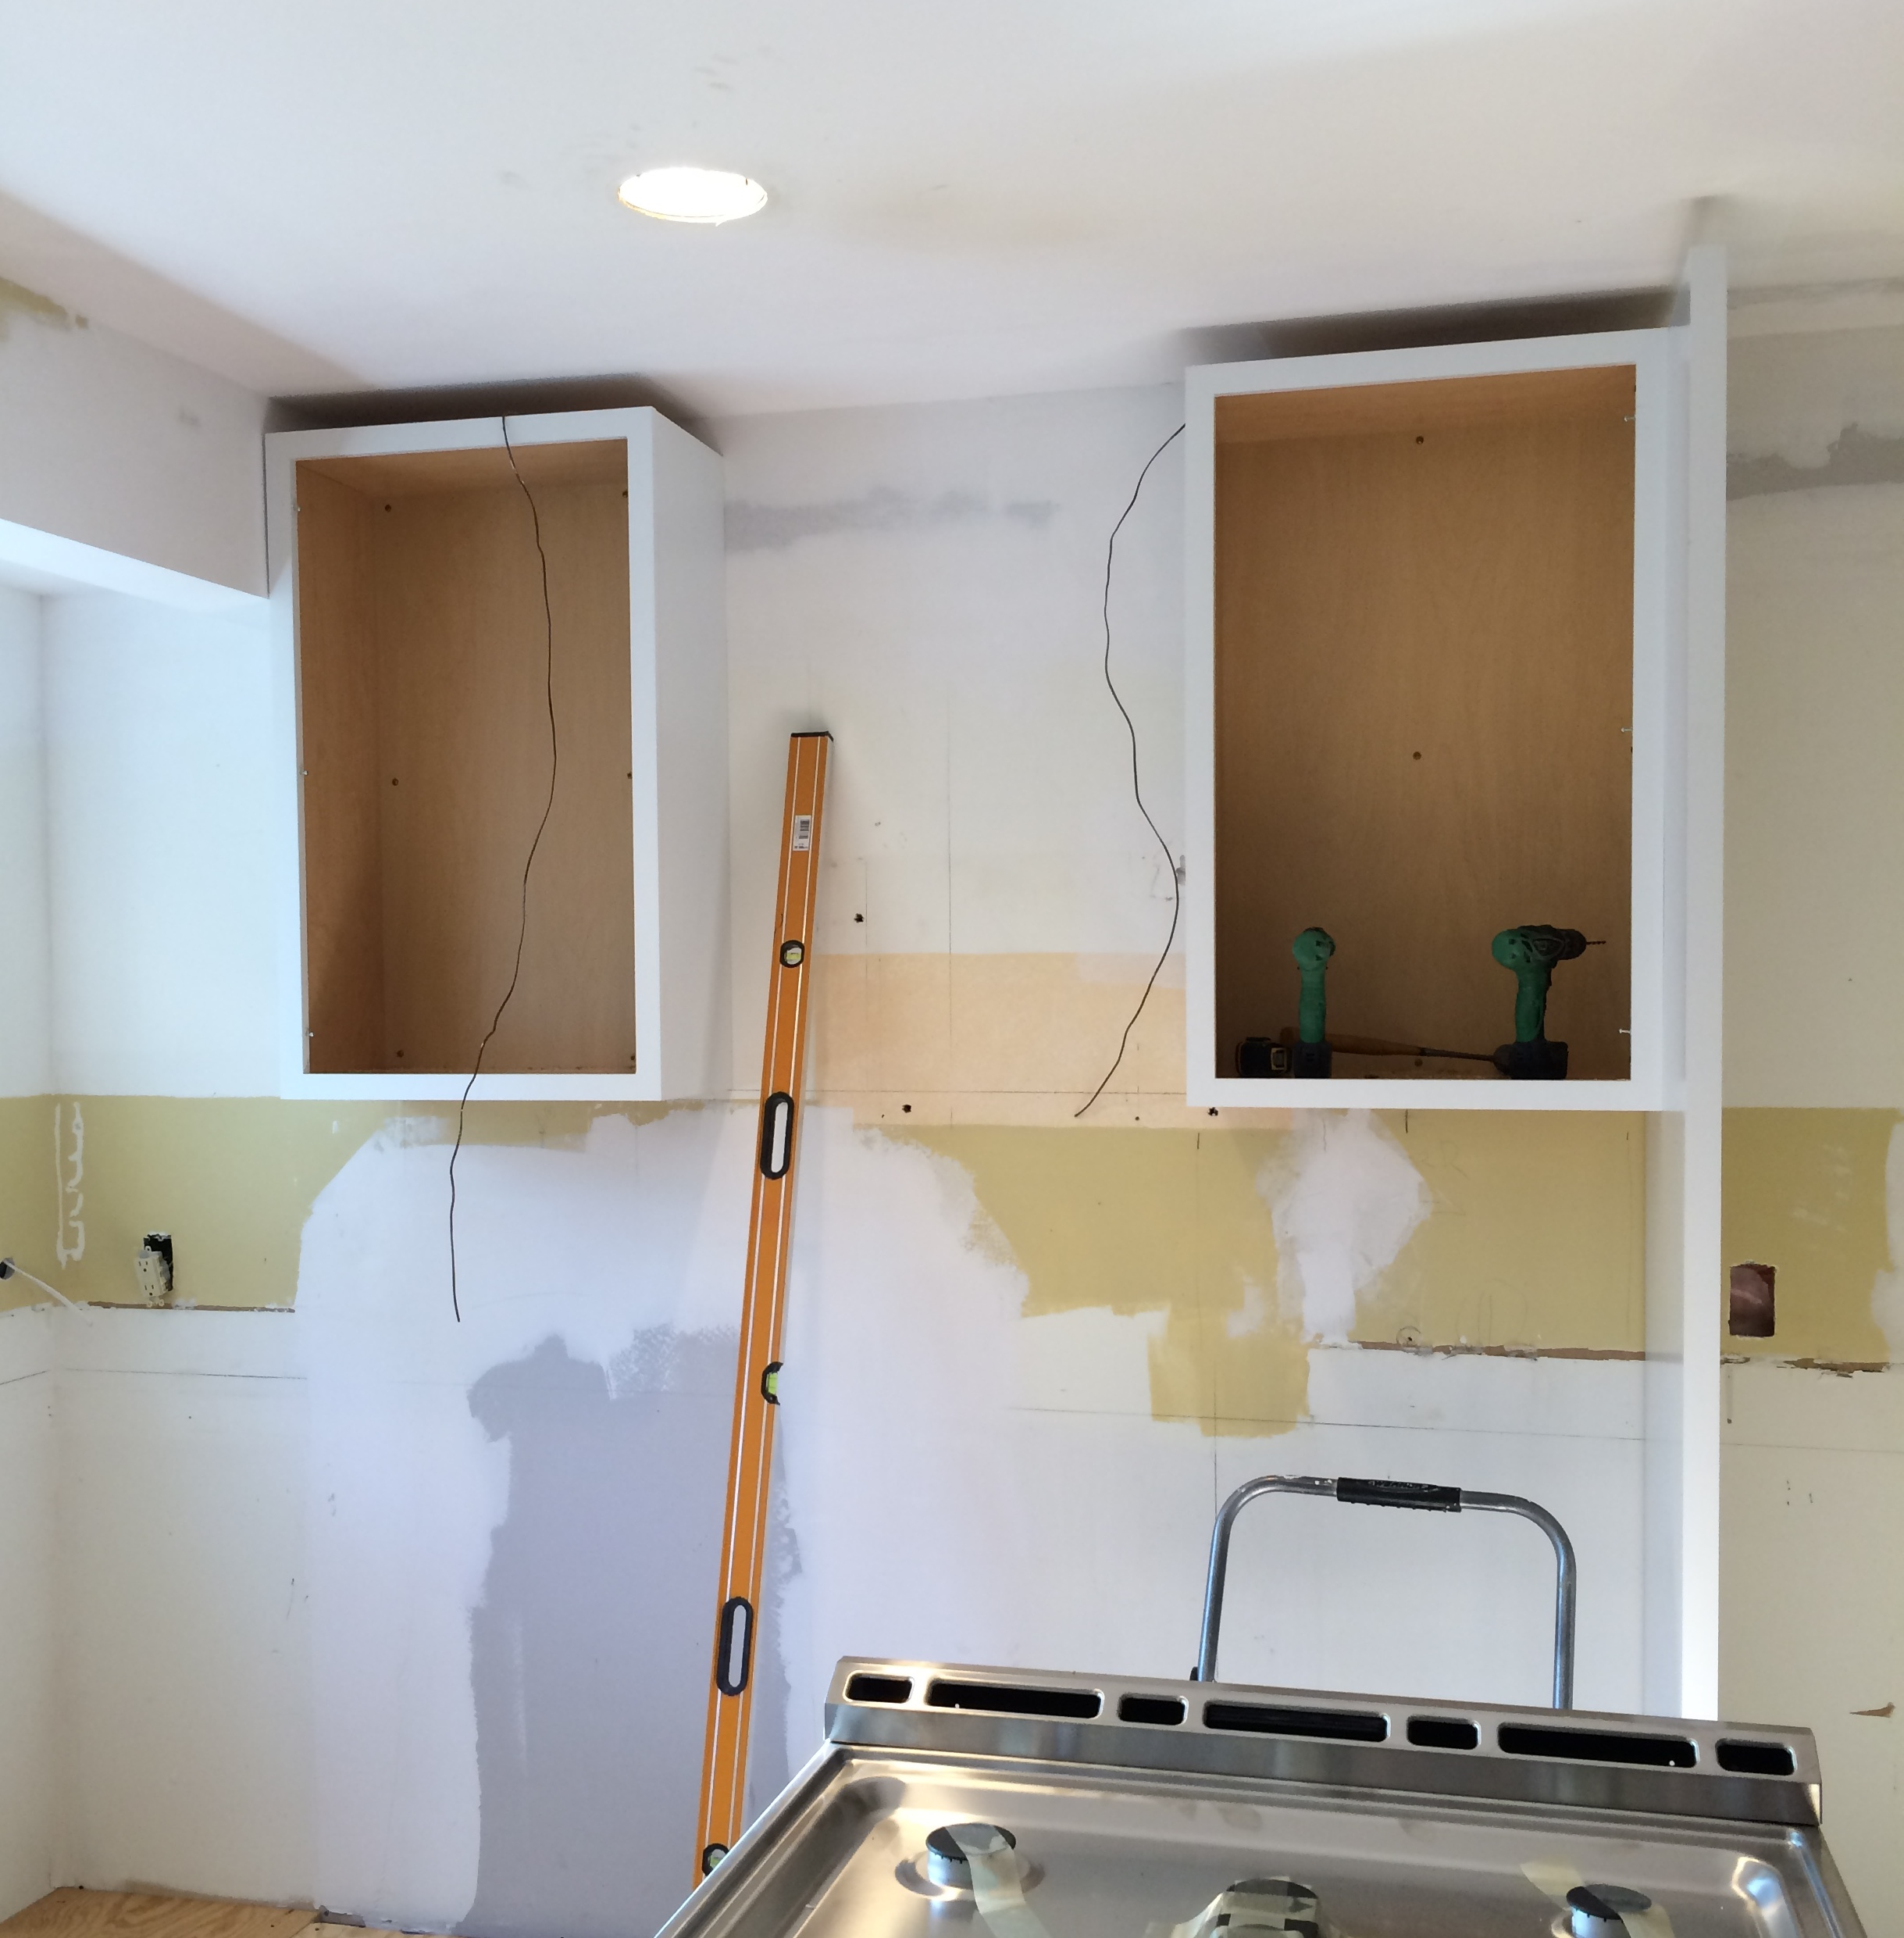 Kitchen Cabinet Install: Kitchen Renovation: The Cabinets